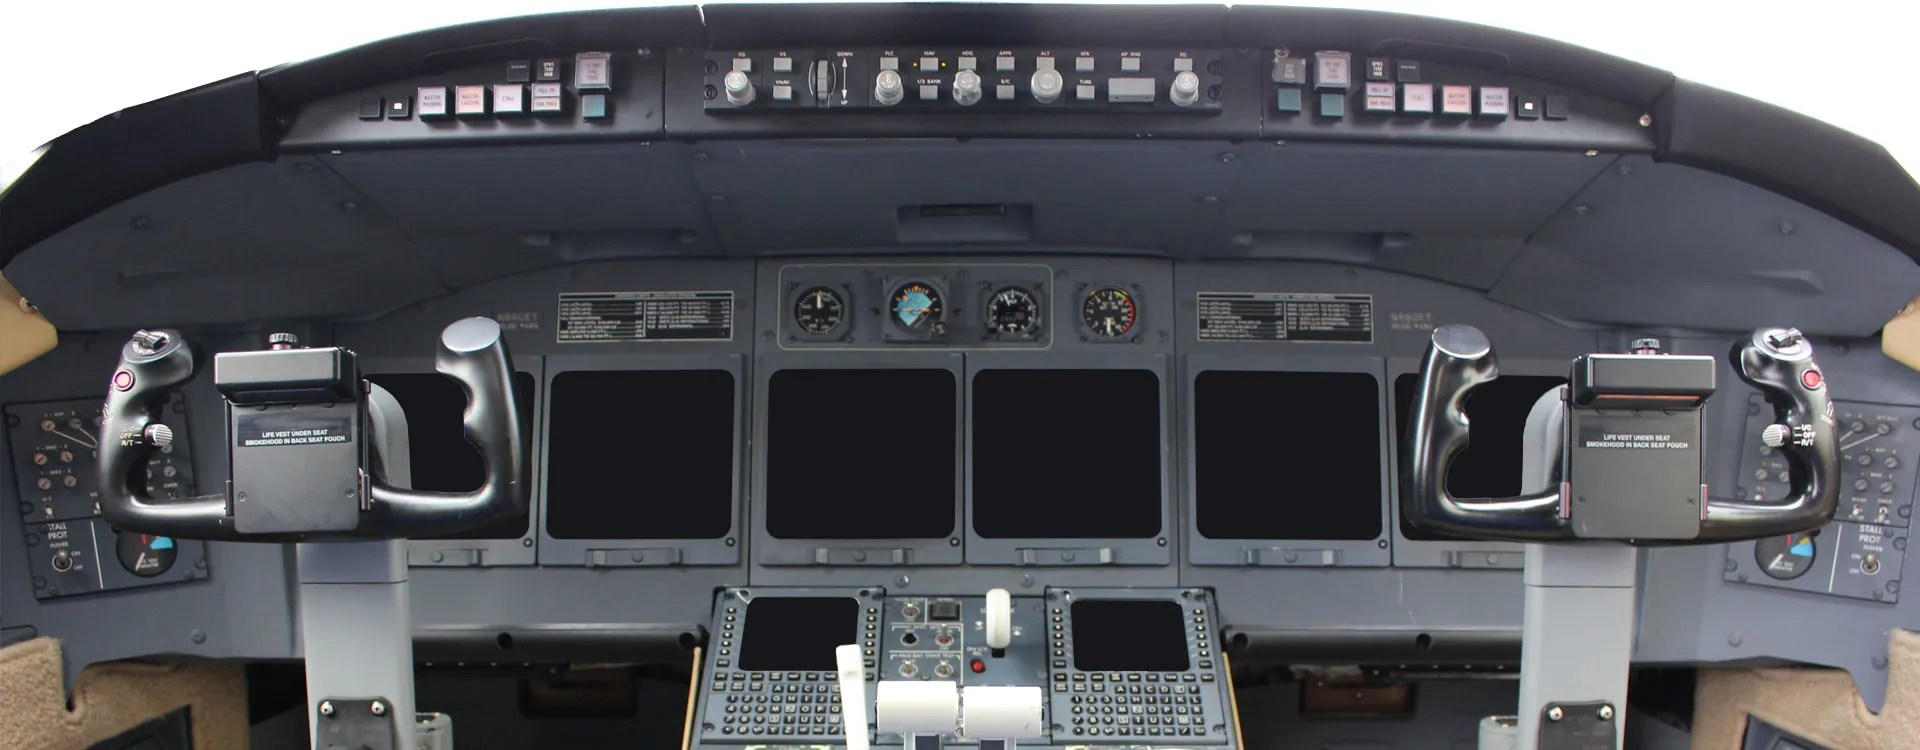 Banyan Avionics corporate jet cockpit